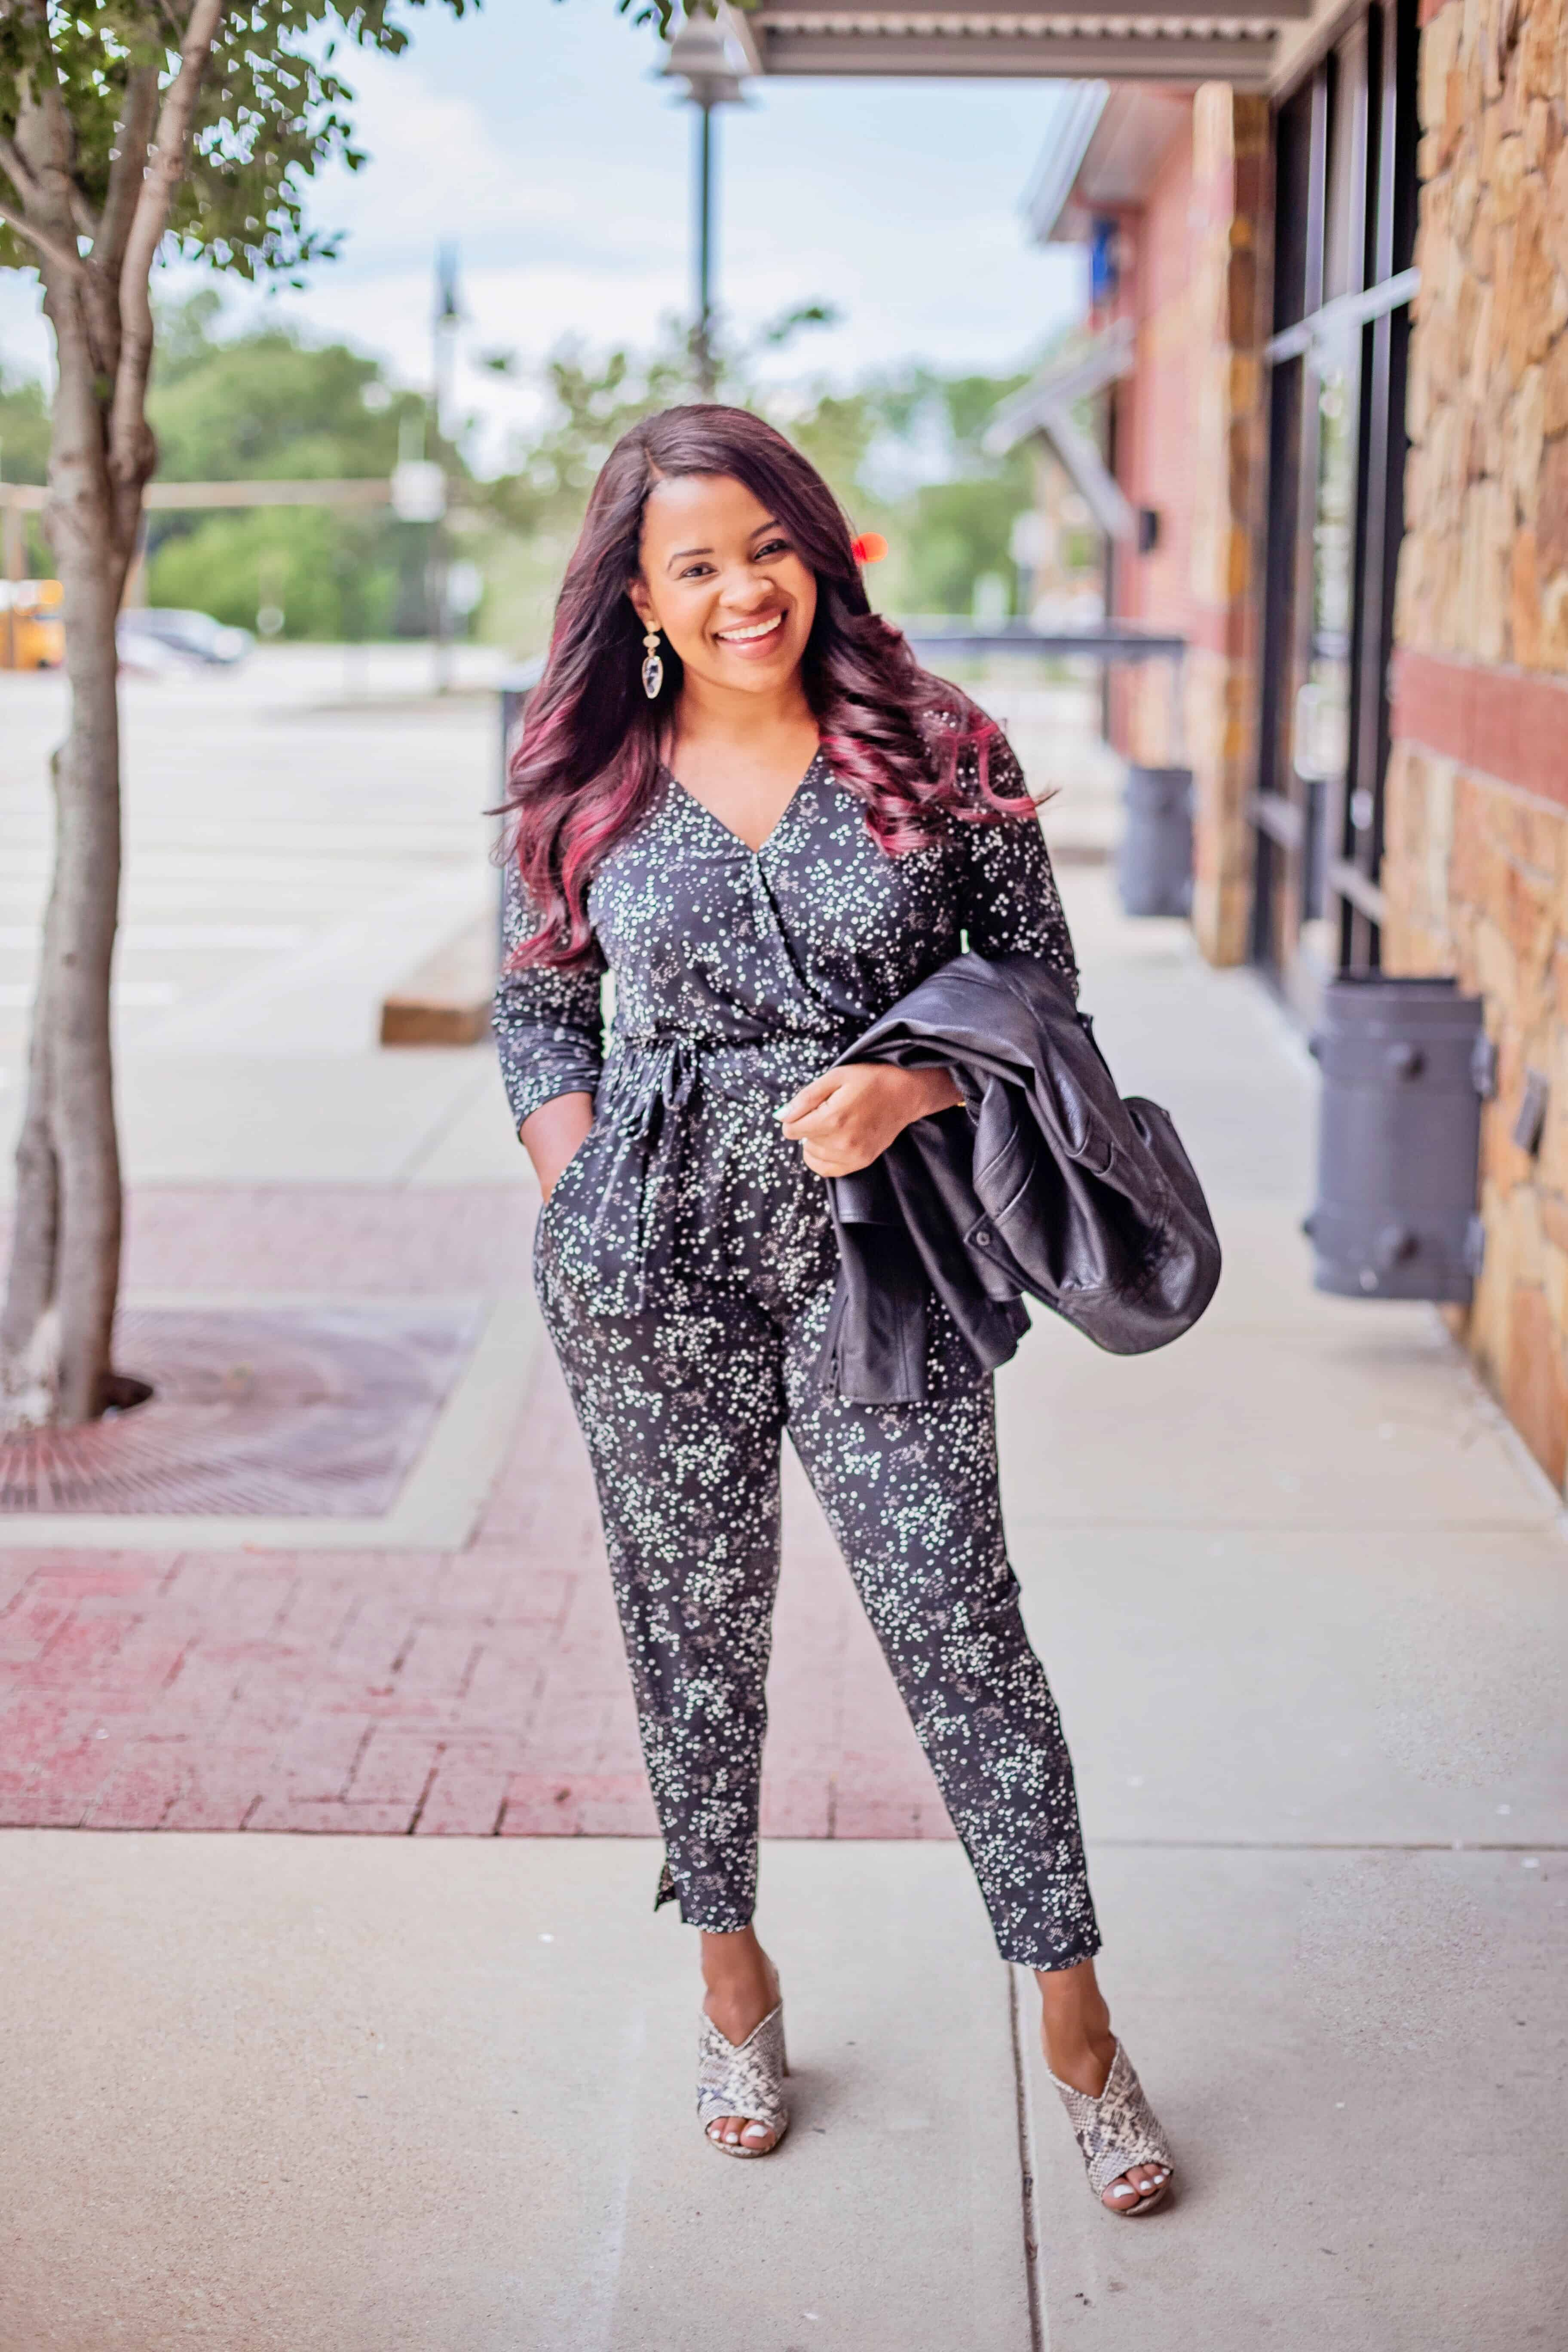 Have you ever considered boosting your confidence just in time for Fall? Dallas Lifestyle Blogger Glamorous Versatility is sharing why you should start now!